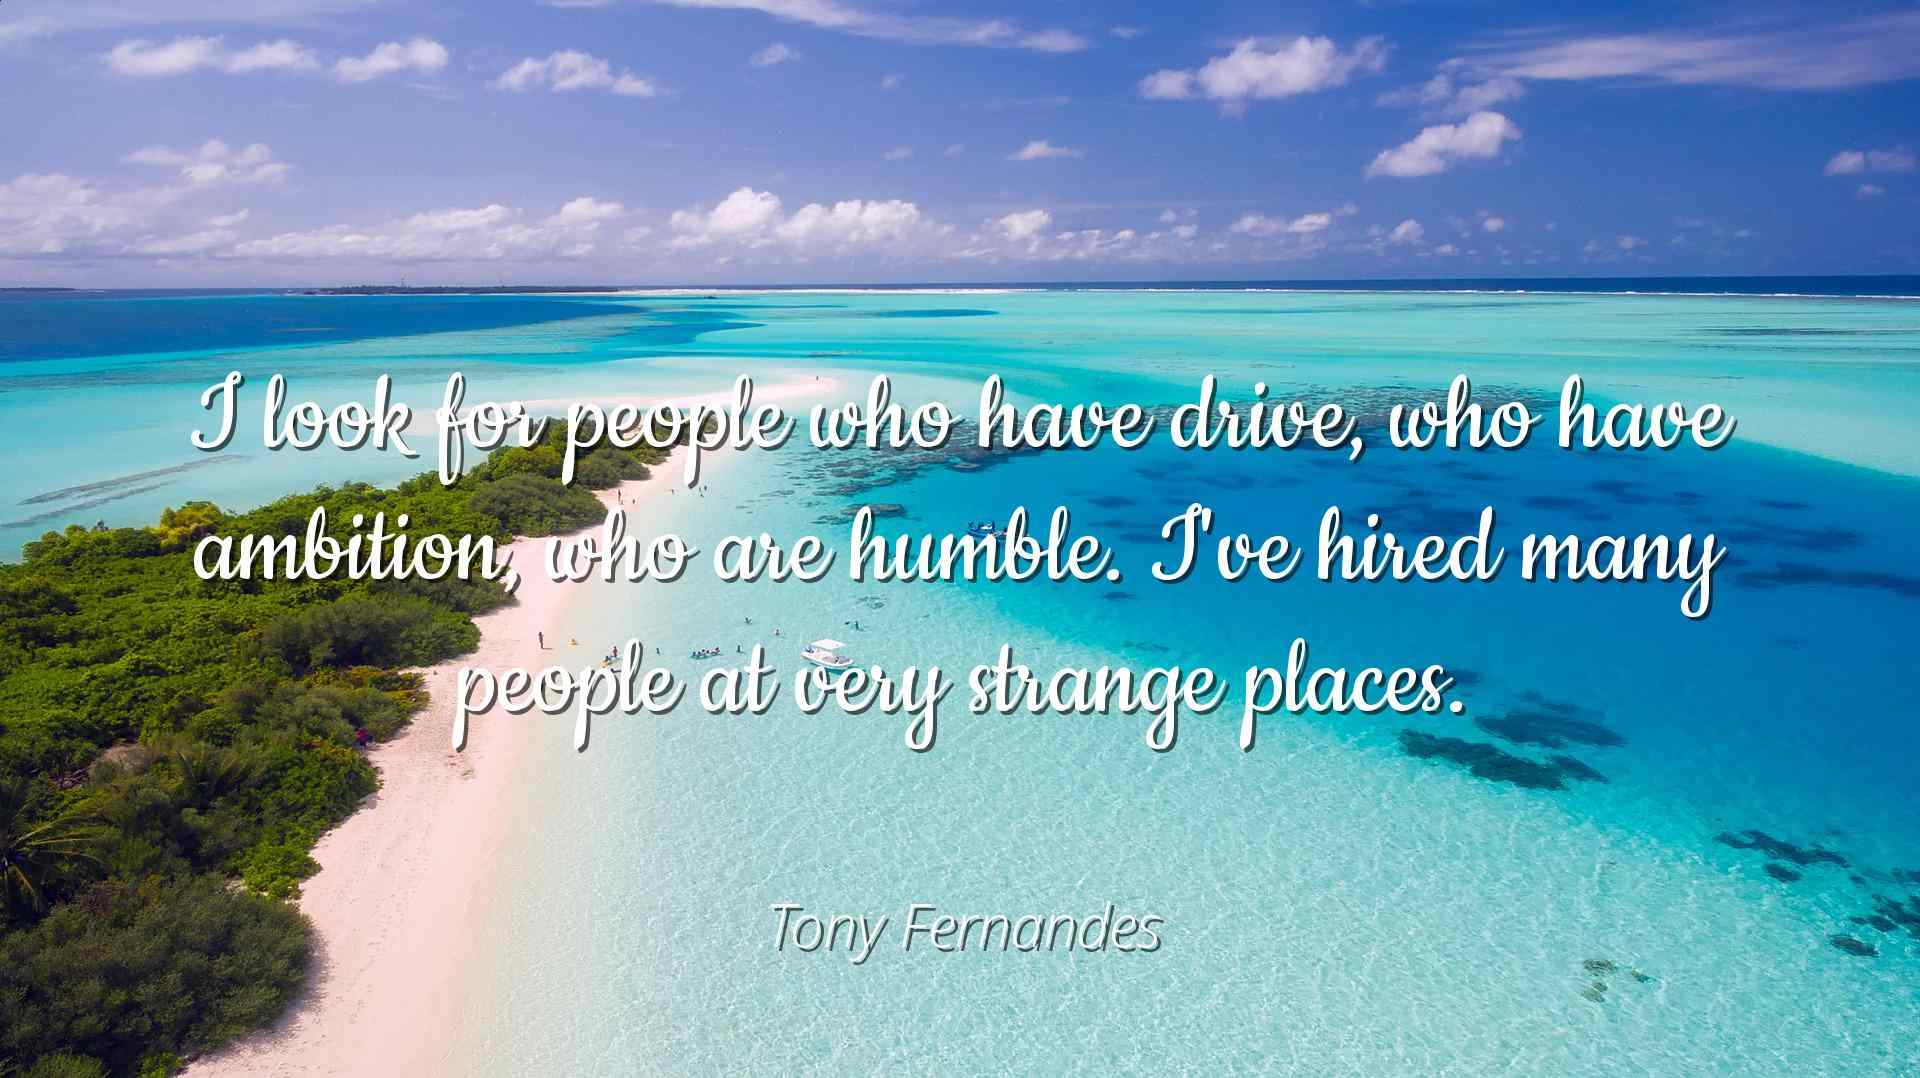 Tony Fernandes Famous Quotes Laminated POSTER PRINT 24X20 I look for people who have... by